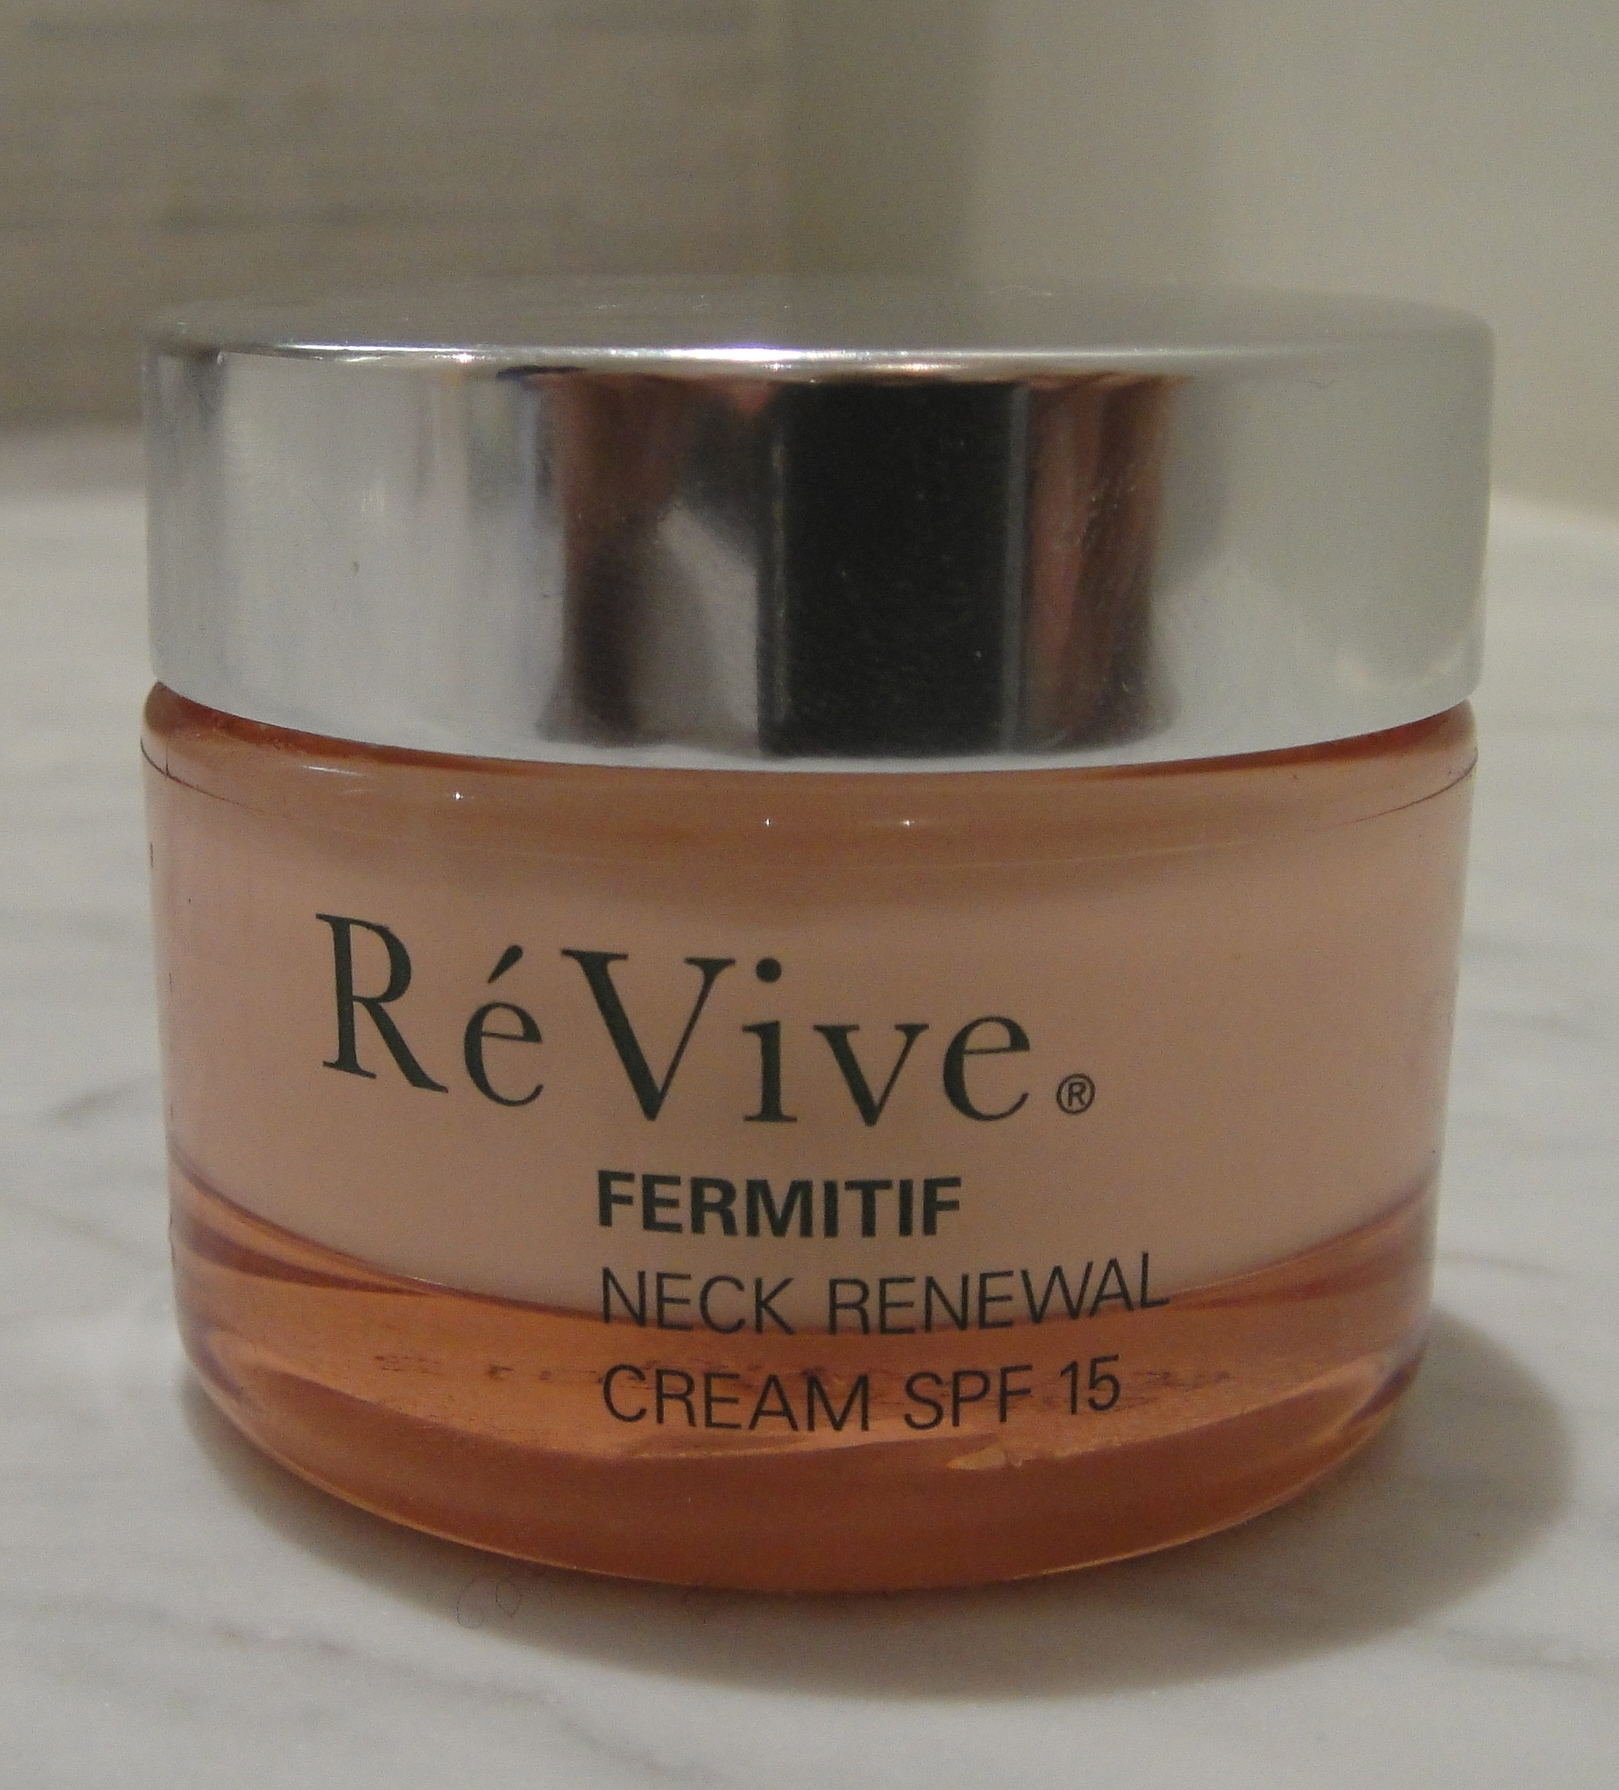 Extra Defense: Neck; Re Vive, Fermitif neck renewal cream (SPF 15)